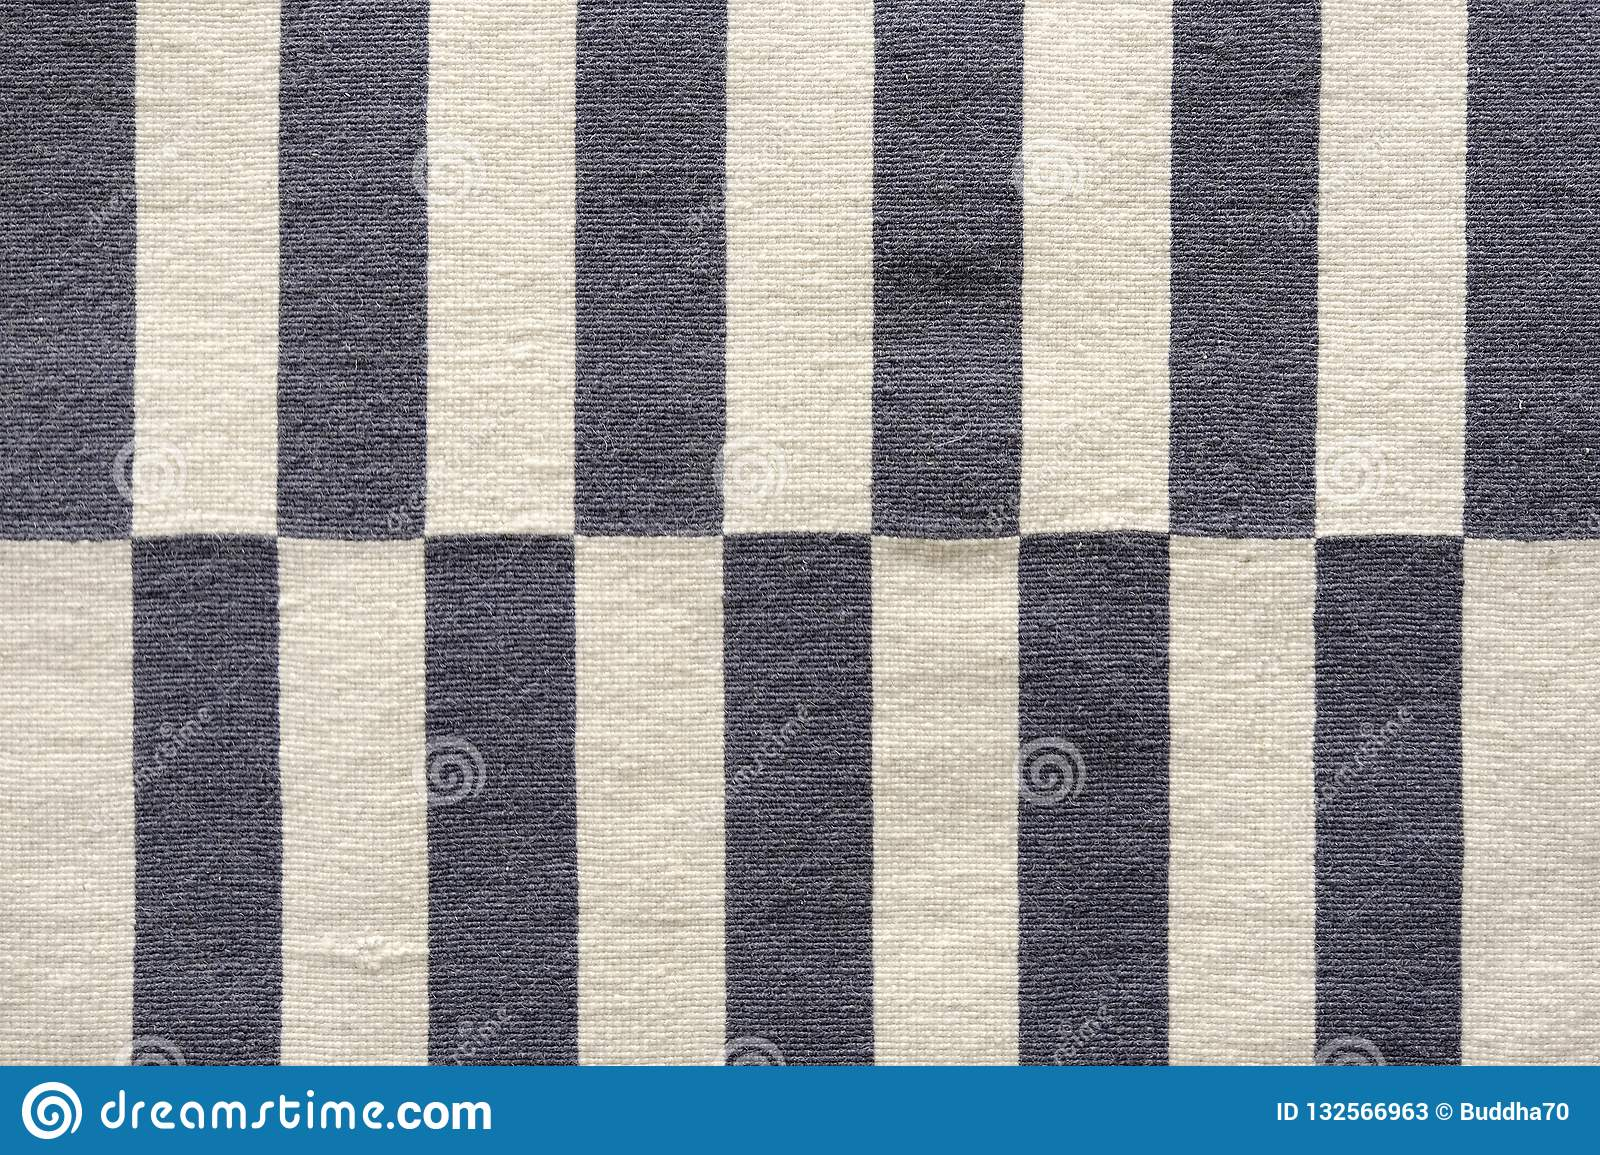 Multi-colored stripes on the fabric. Colorful traditional Peruvian style, close-up rug surface